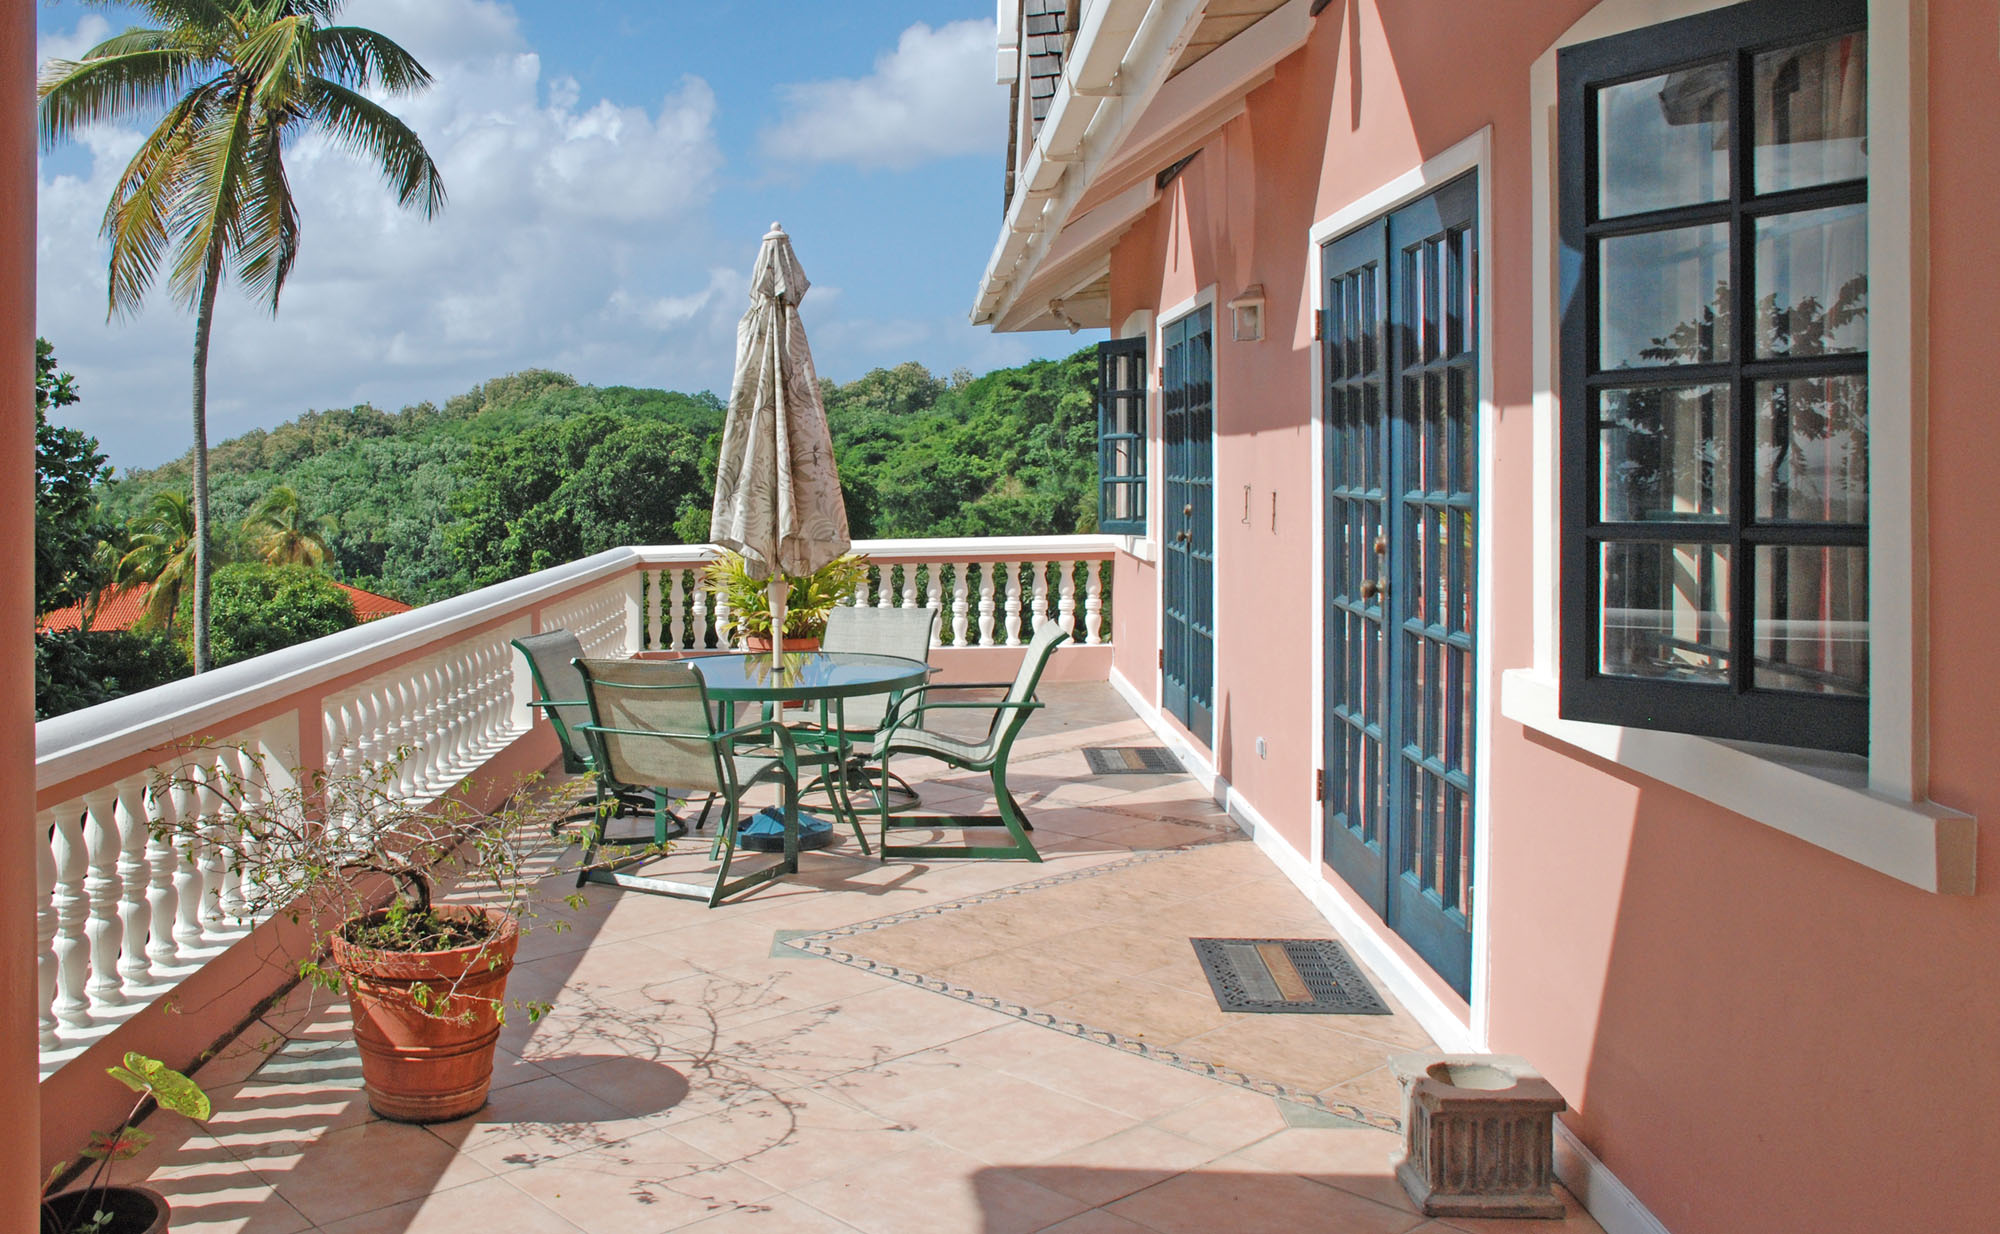 SOL Y MAR VILLA, TOBAGO W.I. Step outside from one of two bedrooms onto the patio to a magnificent view